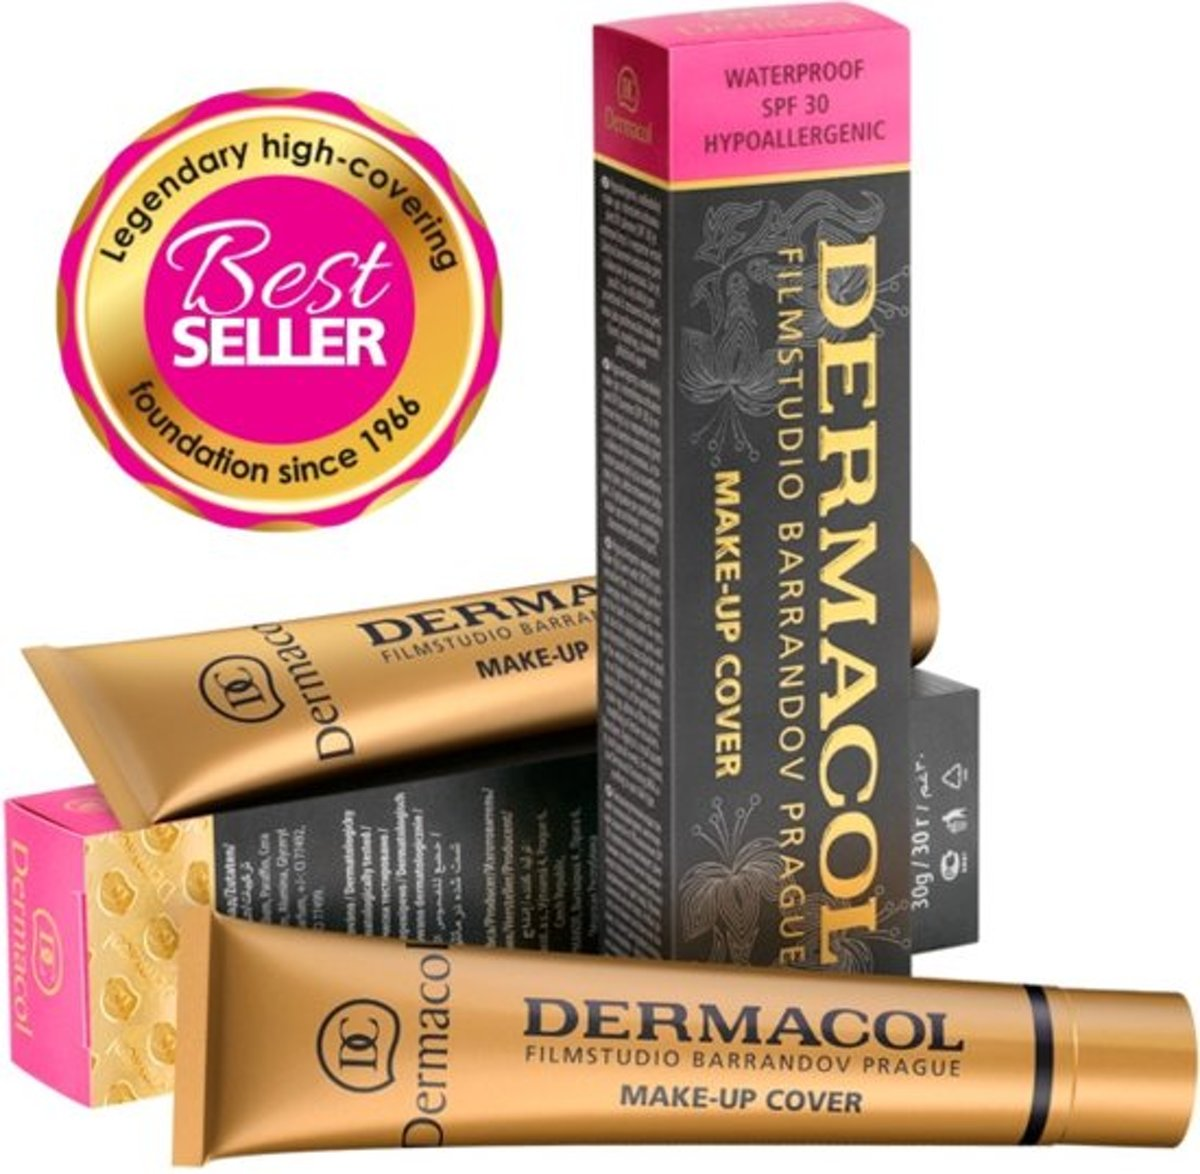 DERMACOL CAMOUFLAGE MAKE-UP COVER LEGENDARY HIGH COVERING MAKE-UP - 30 GRAM - VROUW - WATERPROOF - TINT 224